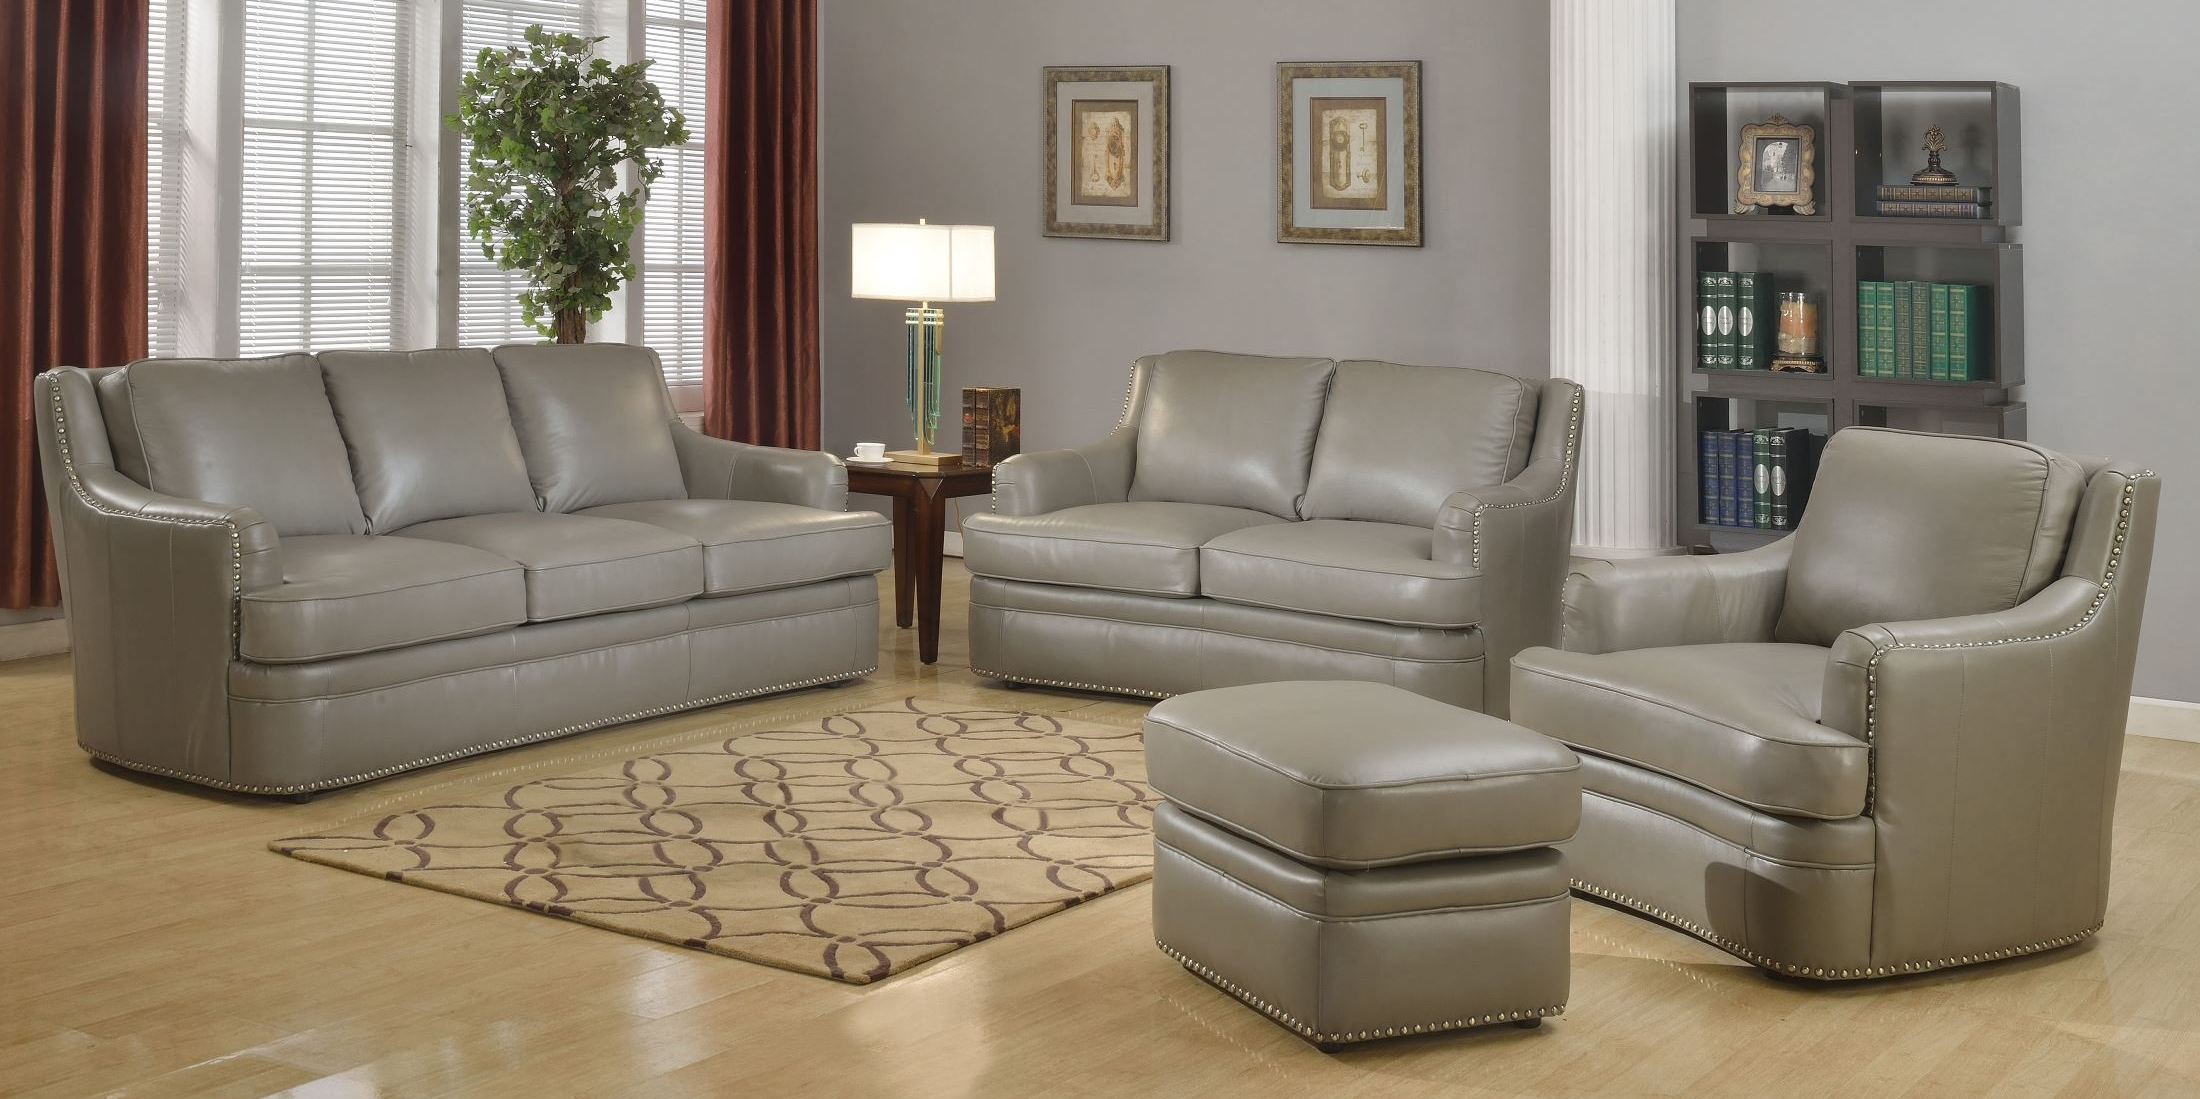 Tulsa Dark Gray Living Room Set From Leather Italia 1444 9013 031812 Cole